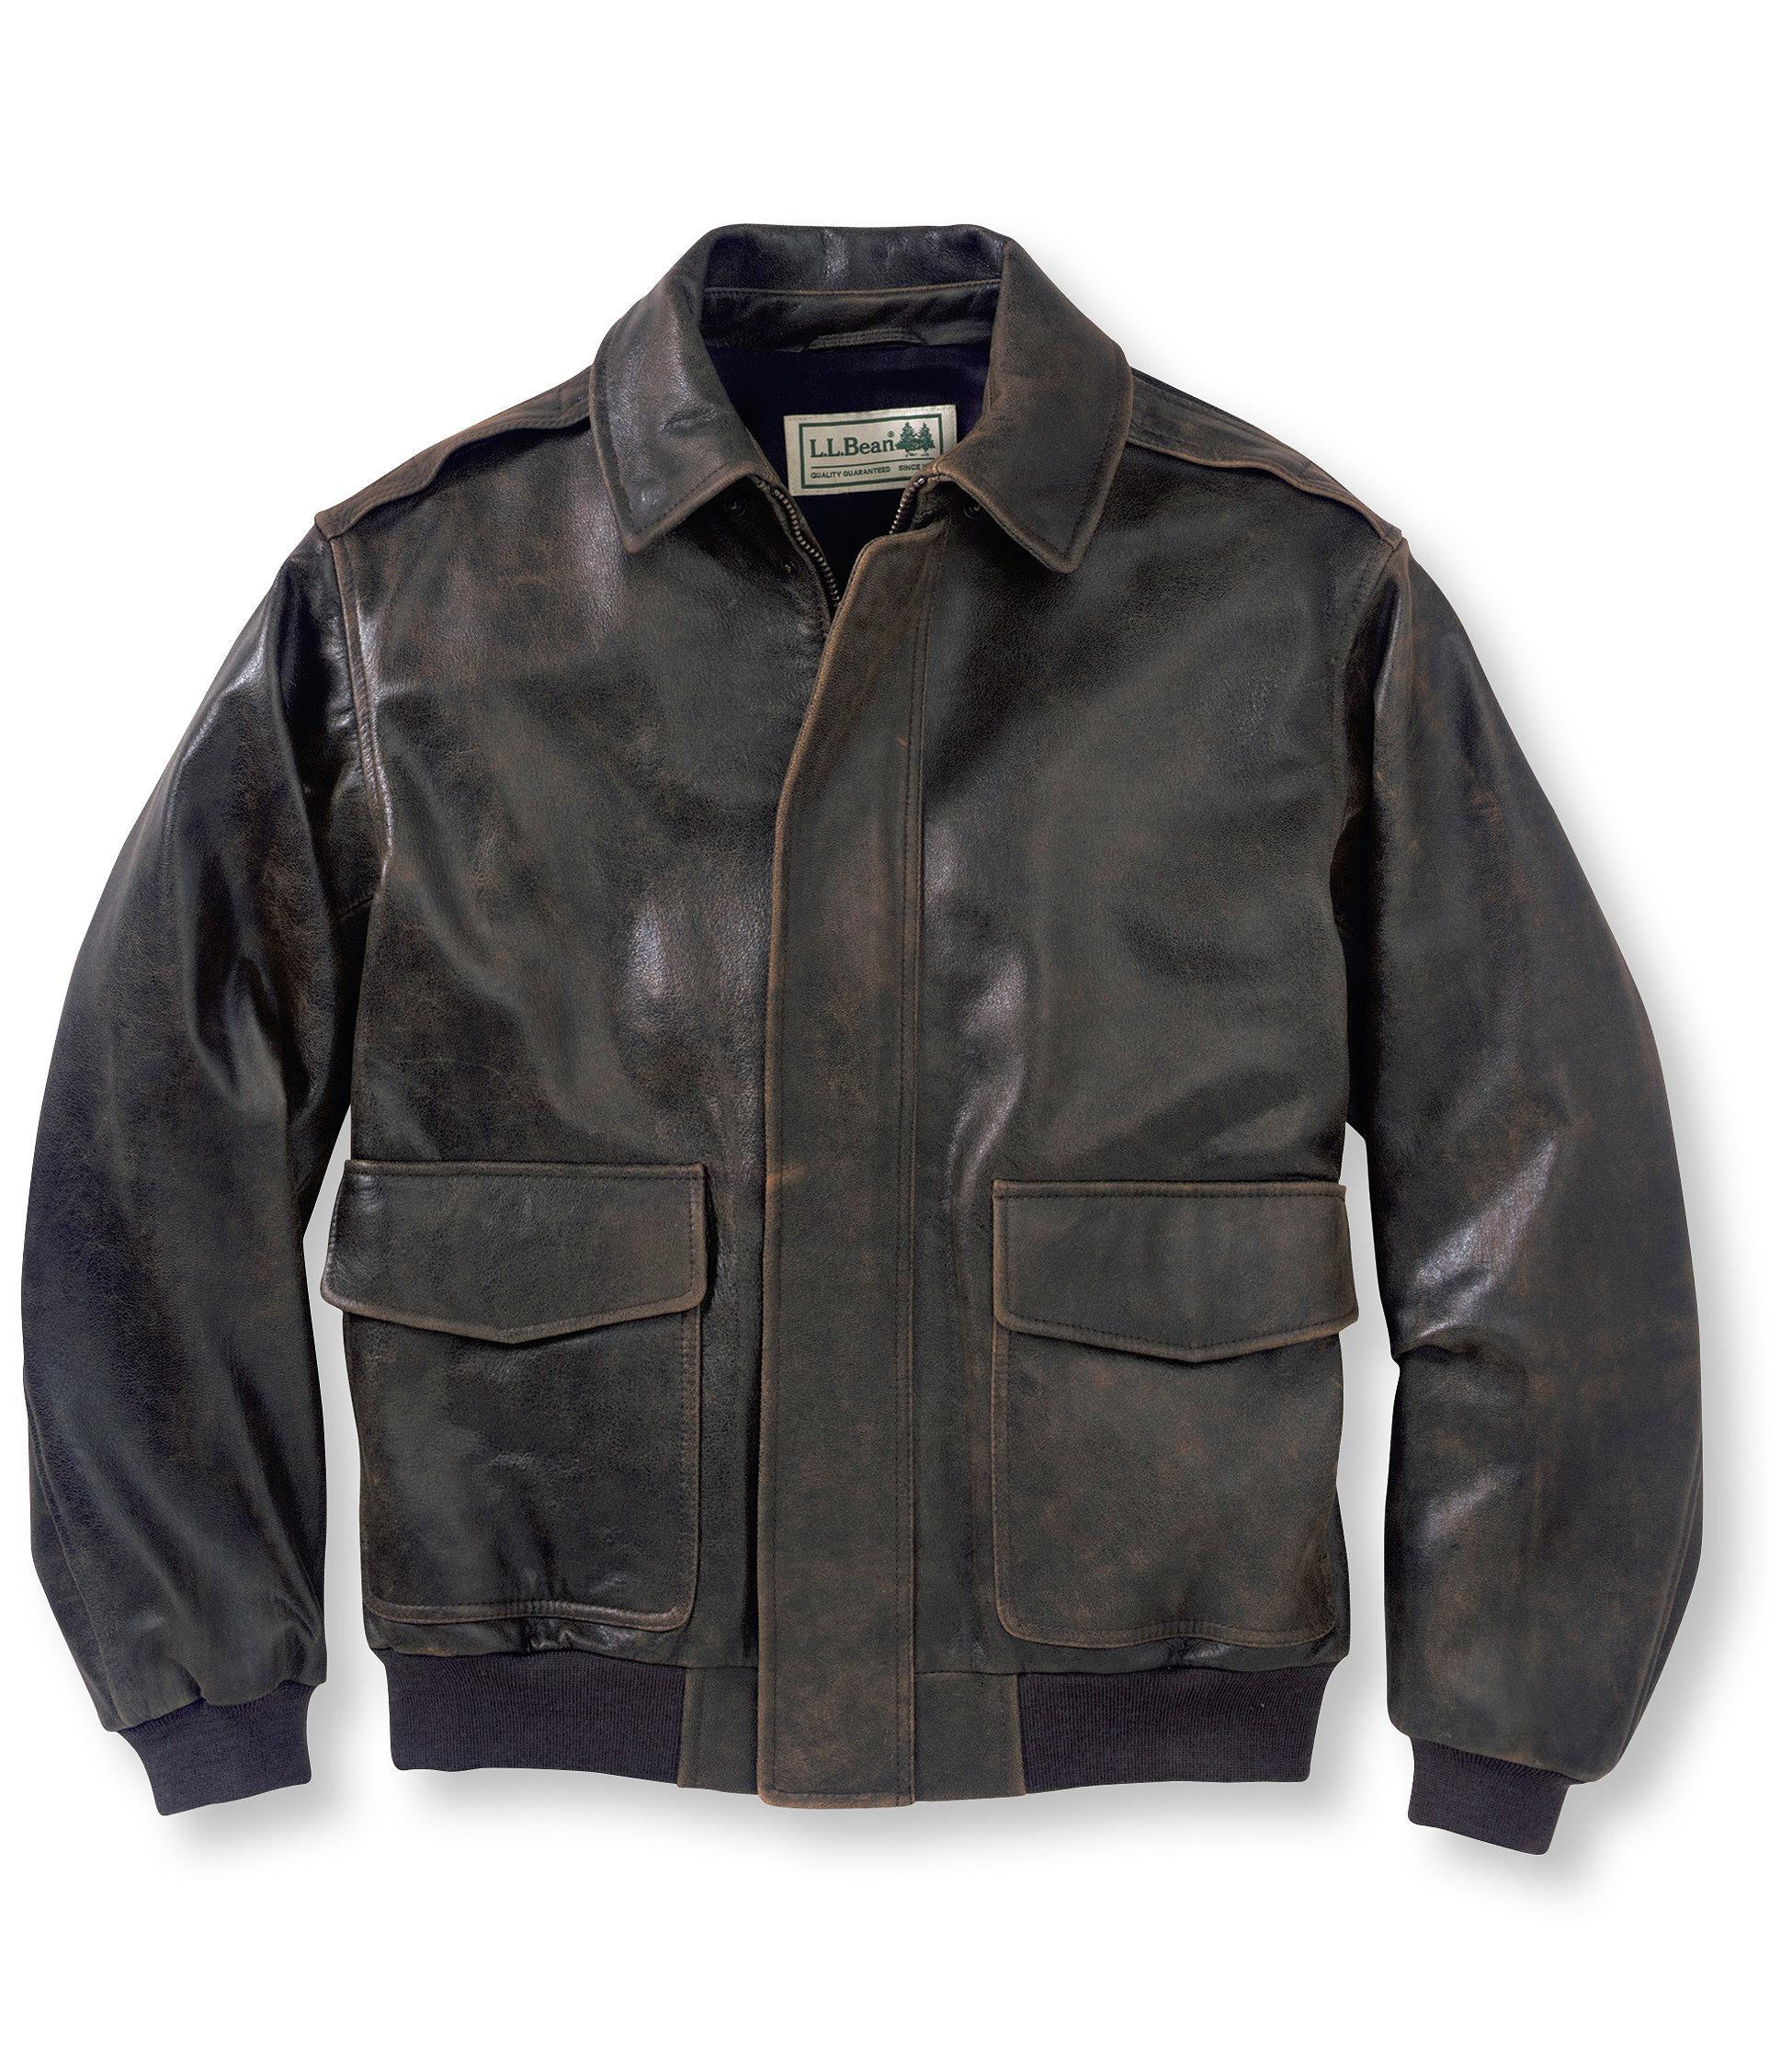 L.L.Bean Flying Tiger Jacket, Uninsulated